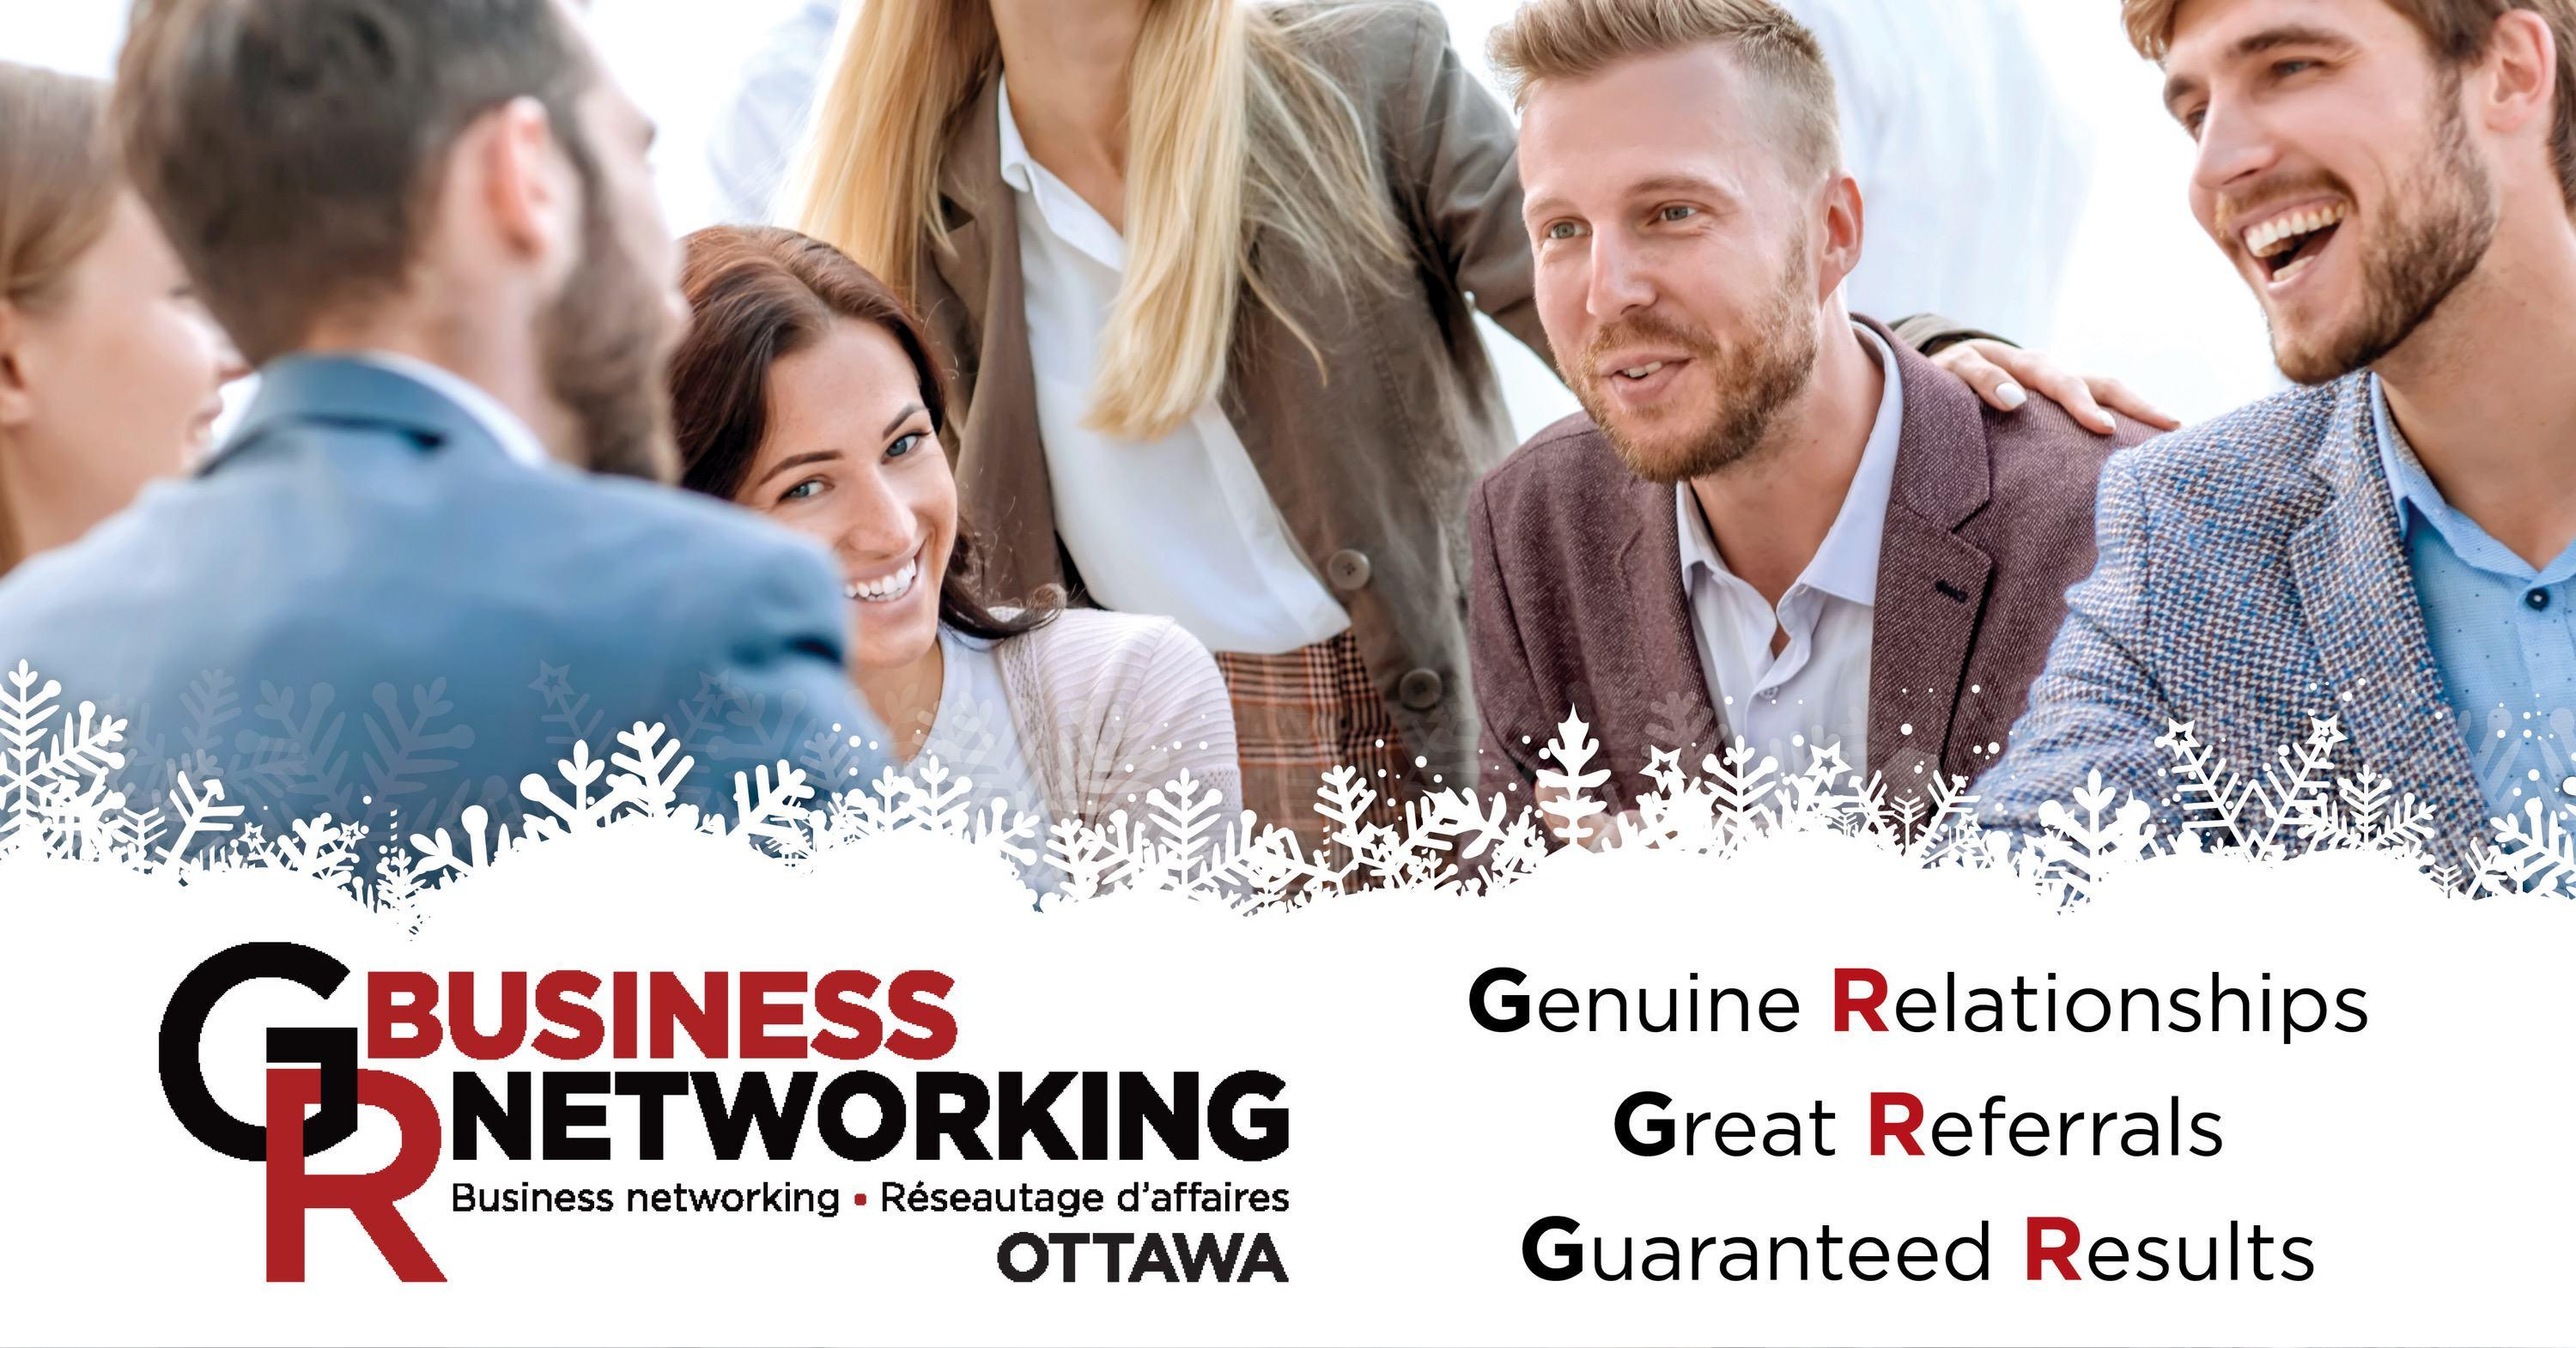 Ottawa East Business Bridge Gappers Networking Breakfast-Guests welcome!